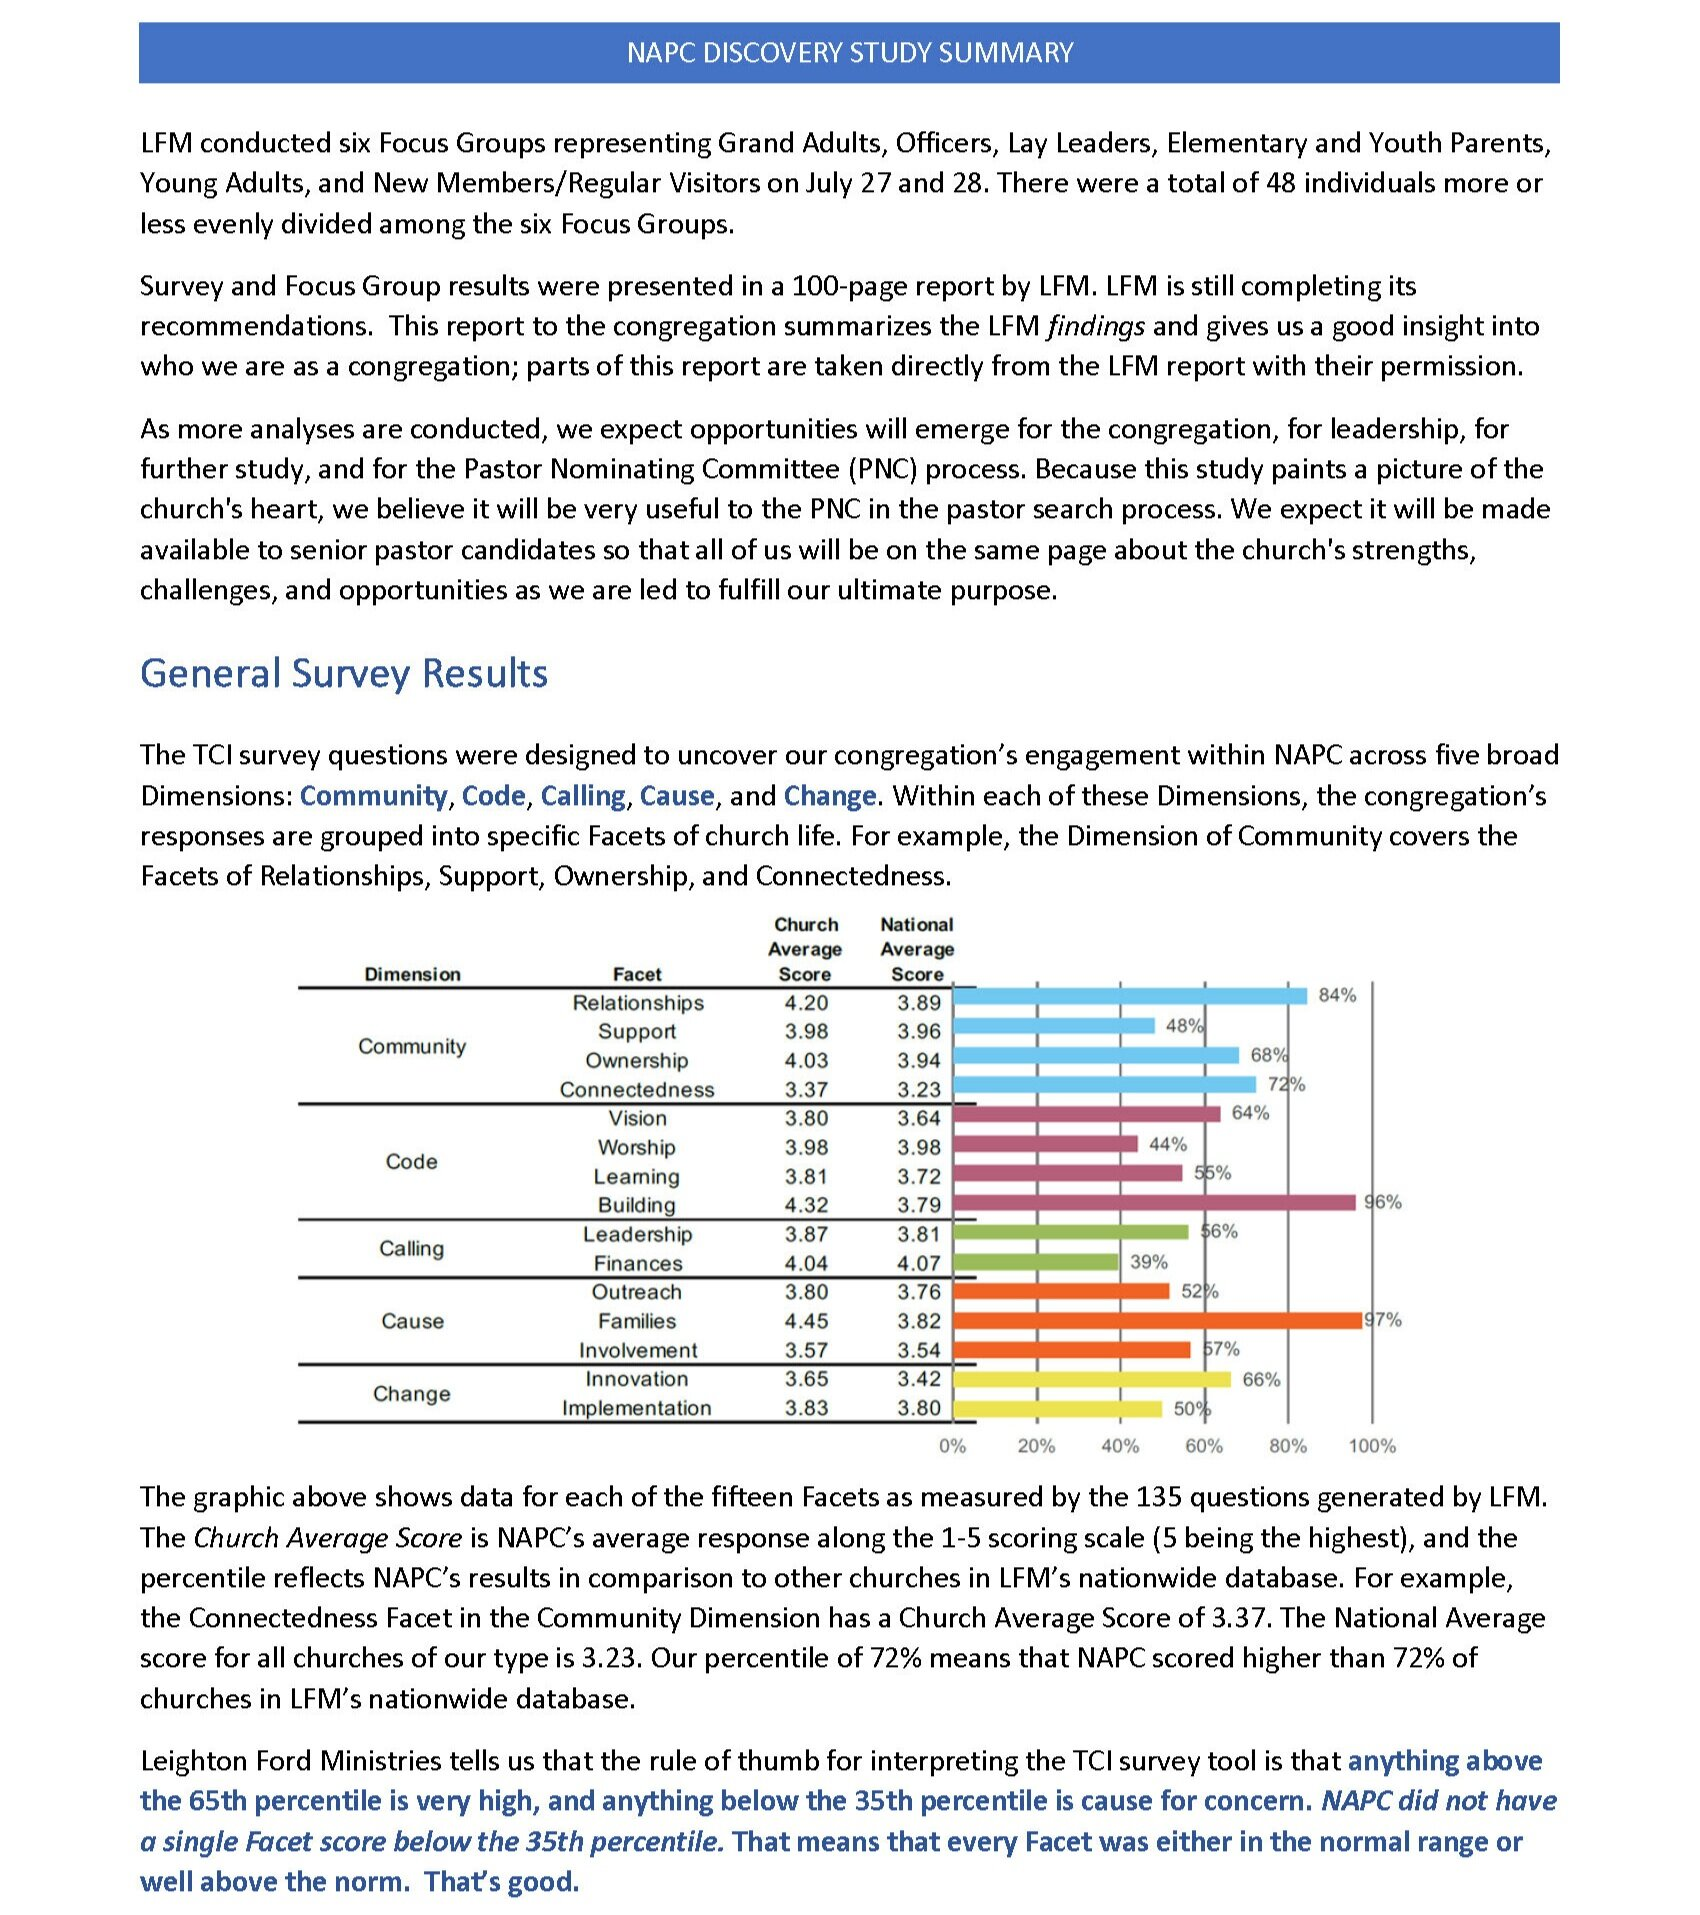 NAPC+Congregation+Discovery+Report-Summary+report+Final+MAKE+100+CONGREGATIONAL+COPIES_Page_2.jpg